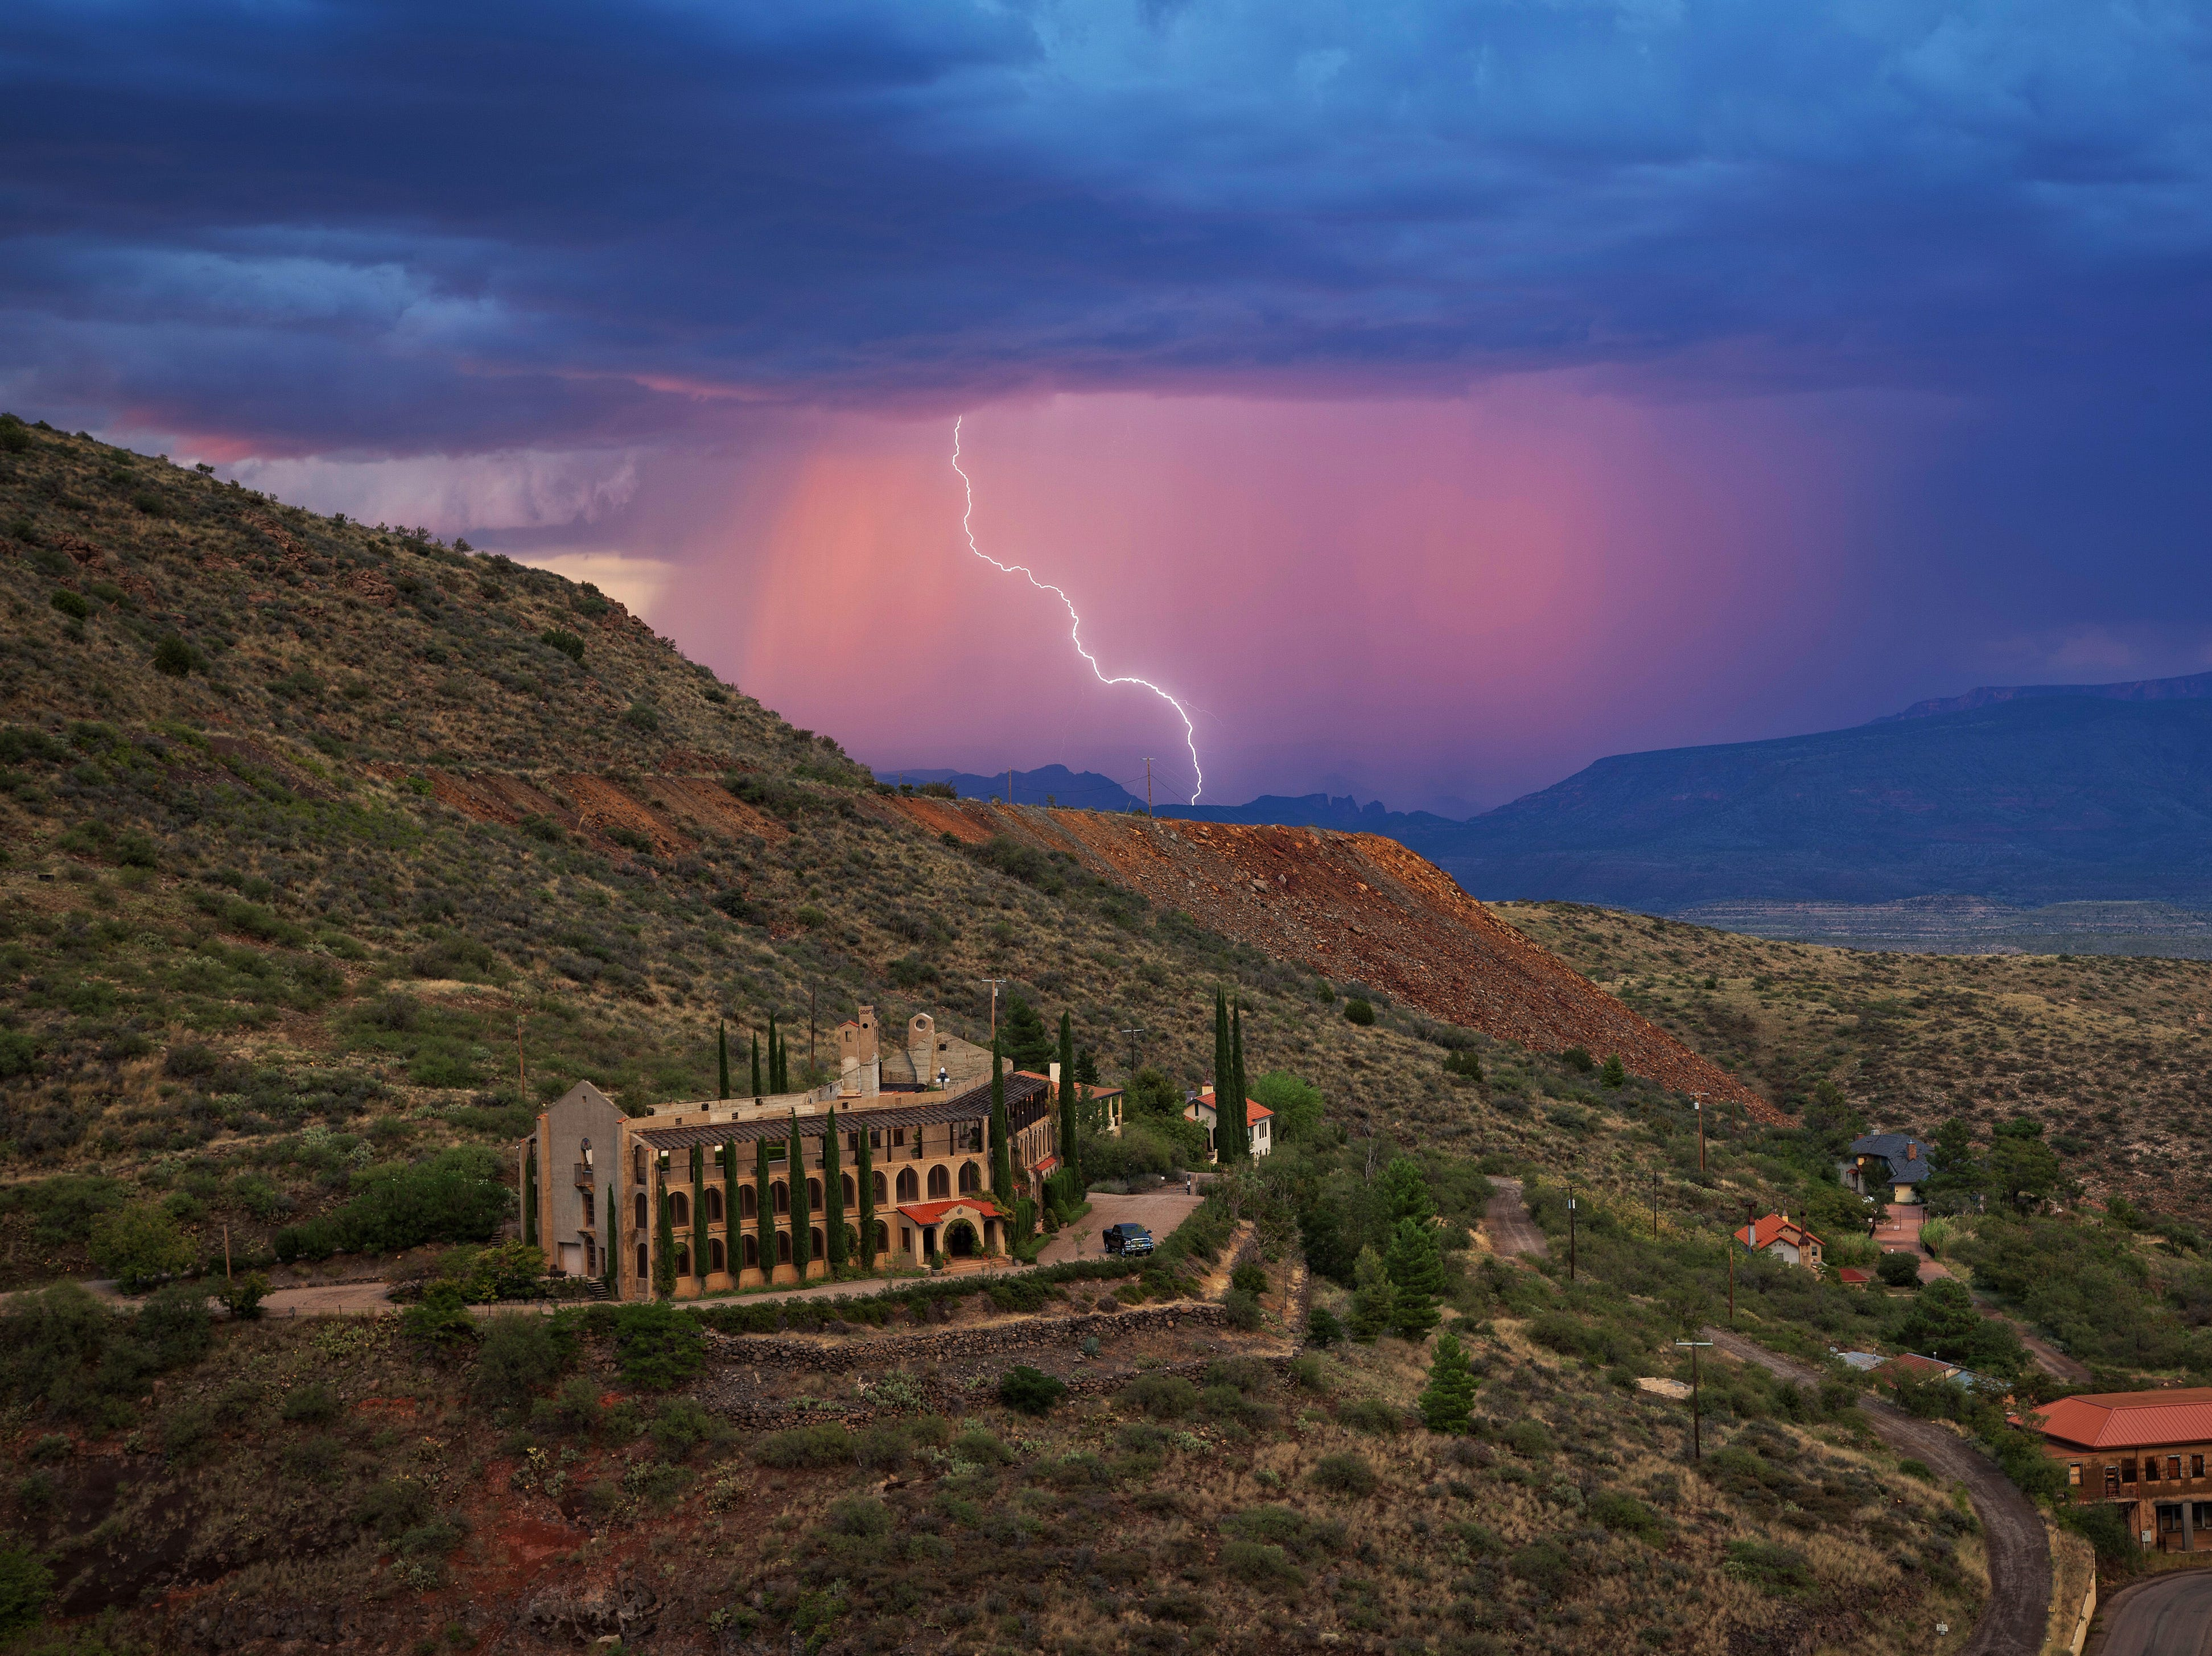 Spectacular storms are seen near the 100-year-old former Little Daisy Hotel in Jerome, which was later turned into a single-family home and is now on the market.